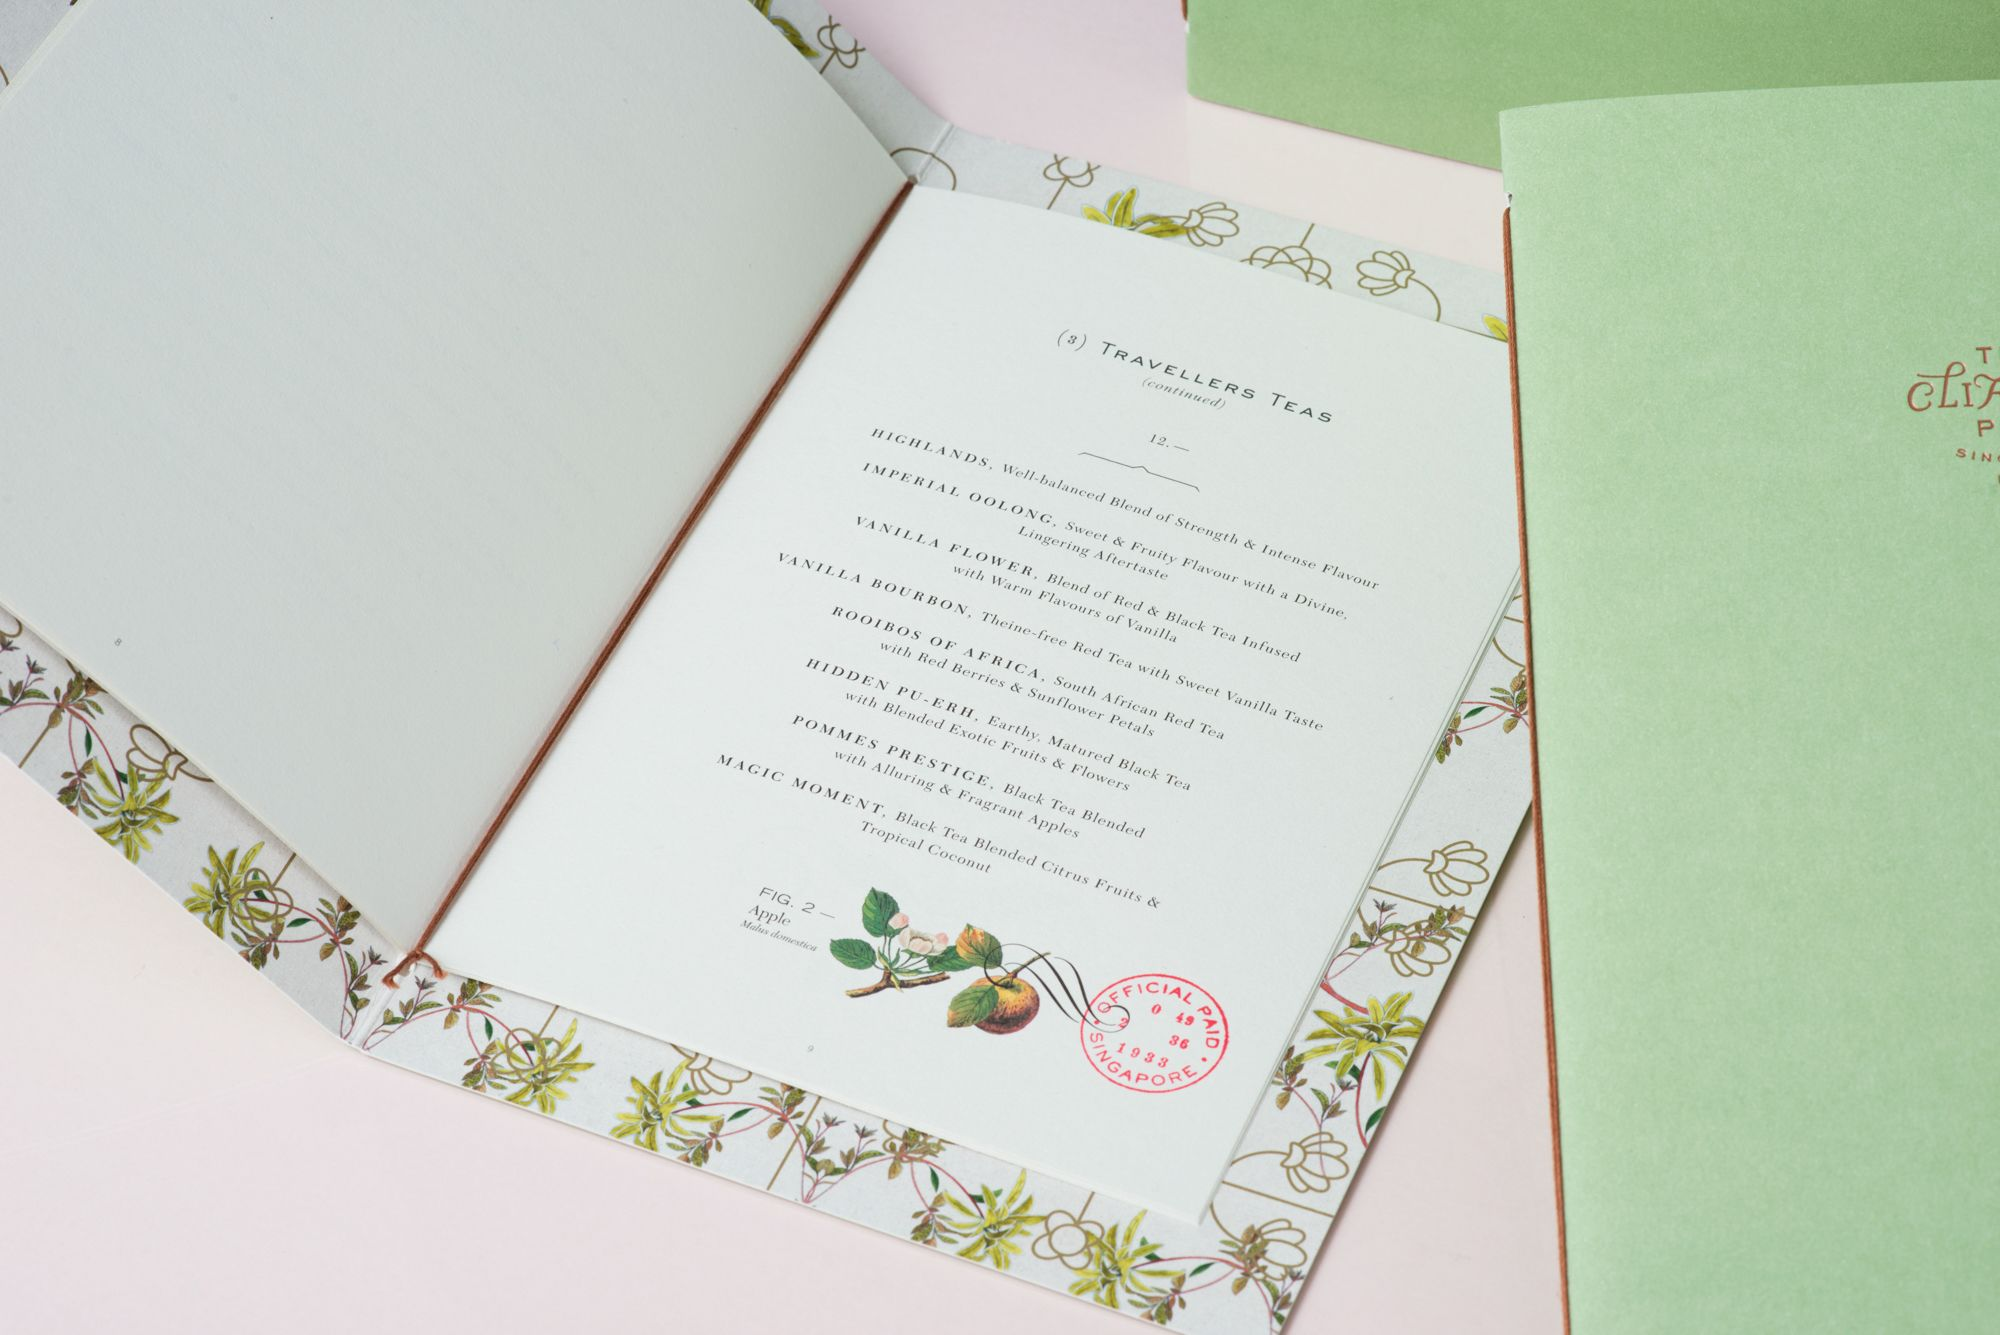 Sharing An Entity With Its Heritage The Clifford Pier Draws From Its Legacy As A Bustling Port In Singapore Du Wedding Stationery Booklet Design Ginger Flower